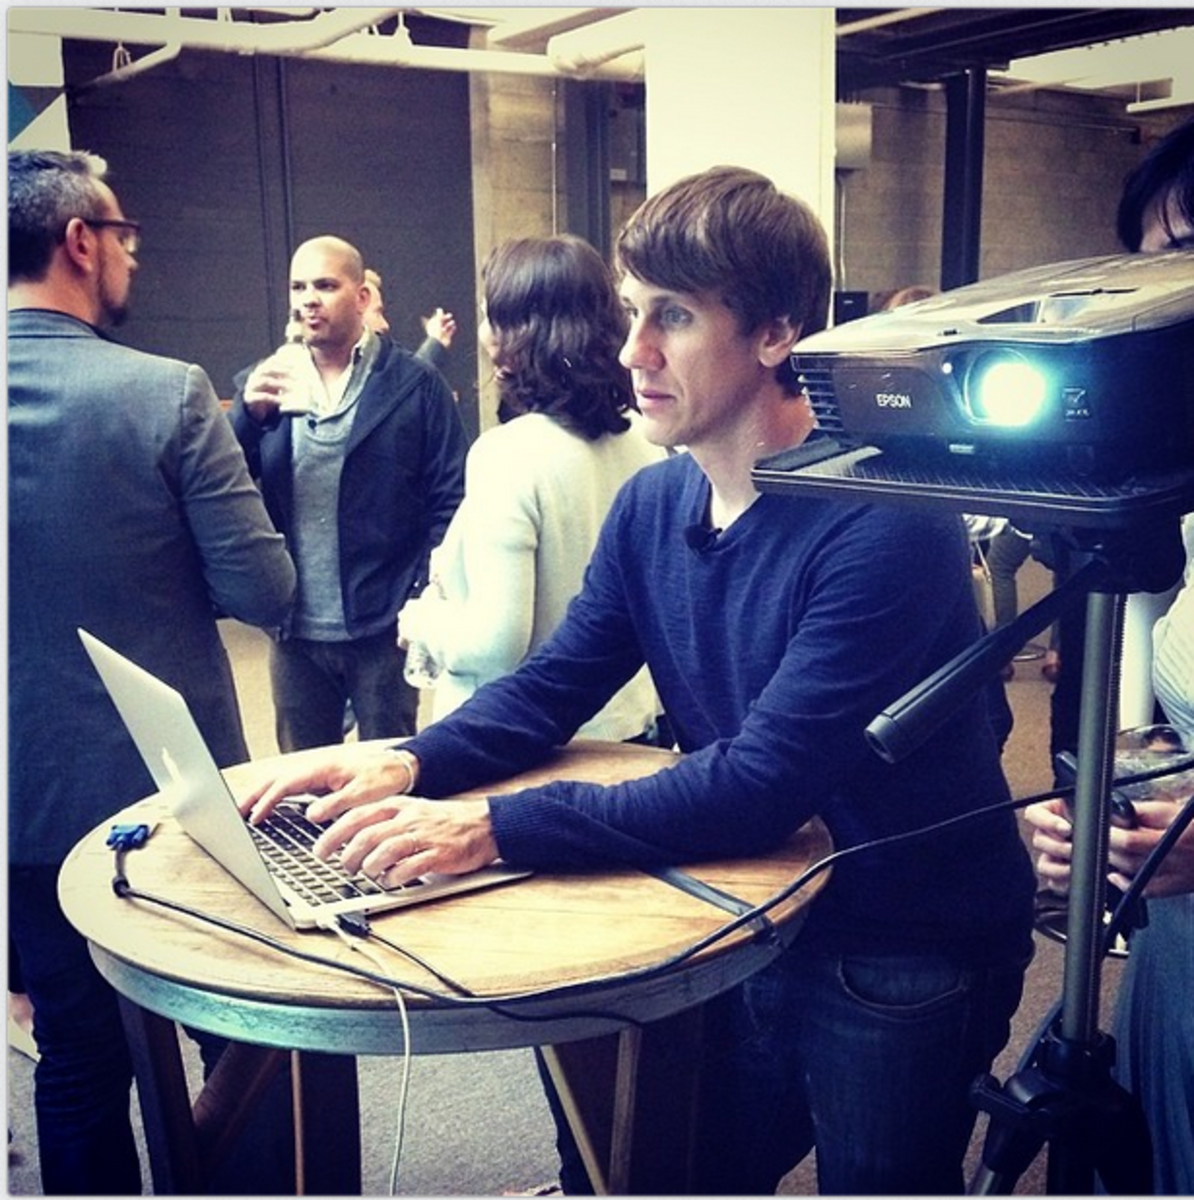 Dennis Crowley playing with the FourSquare API demo, photo via Owen Thomas